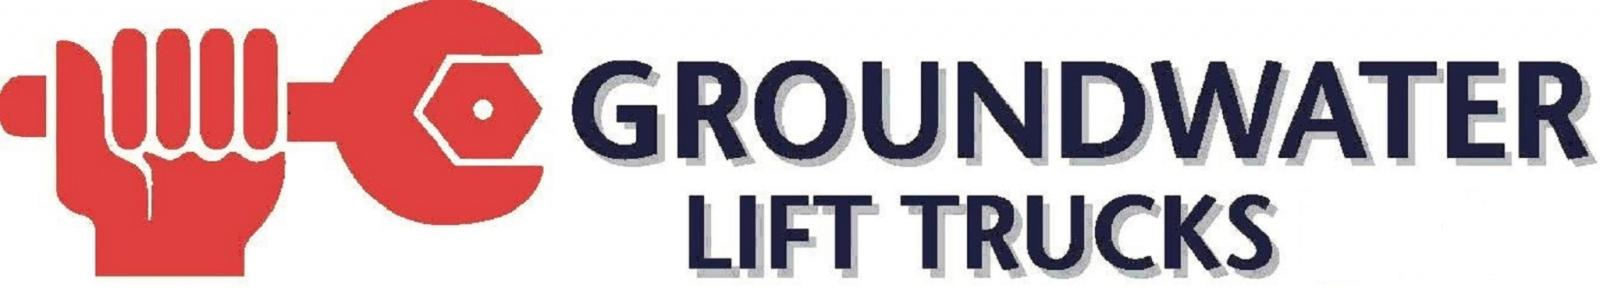 Groundwater Lift Trucks Ltd